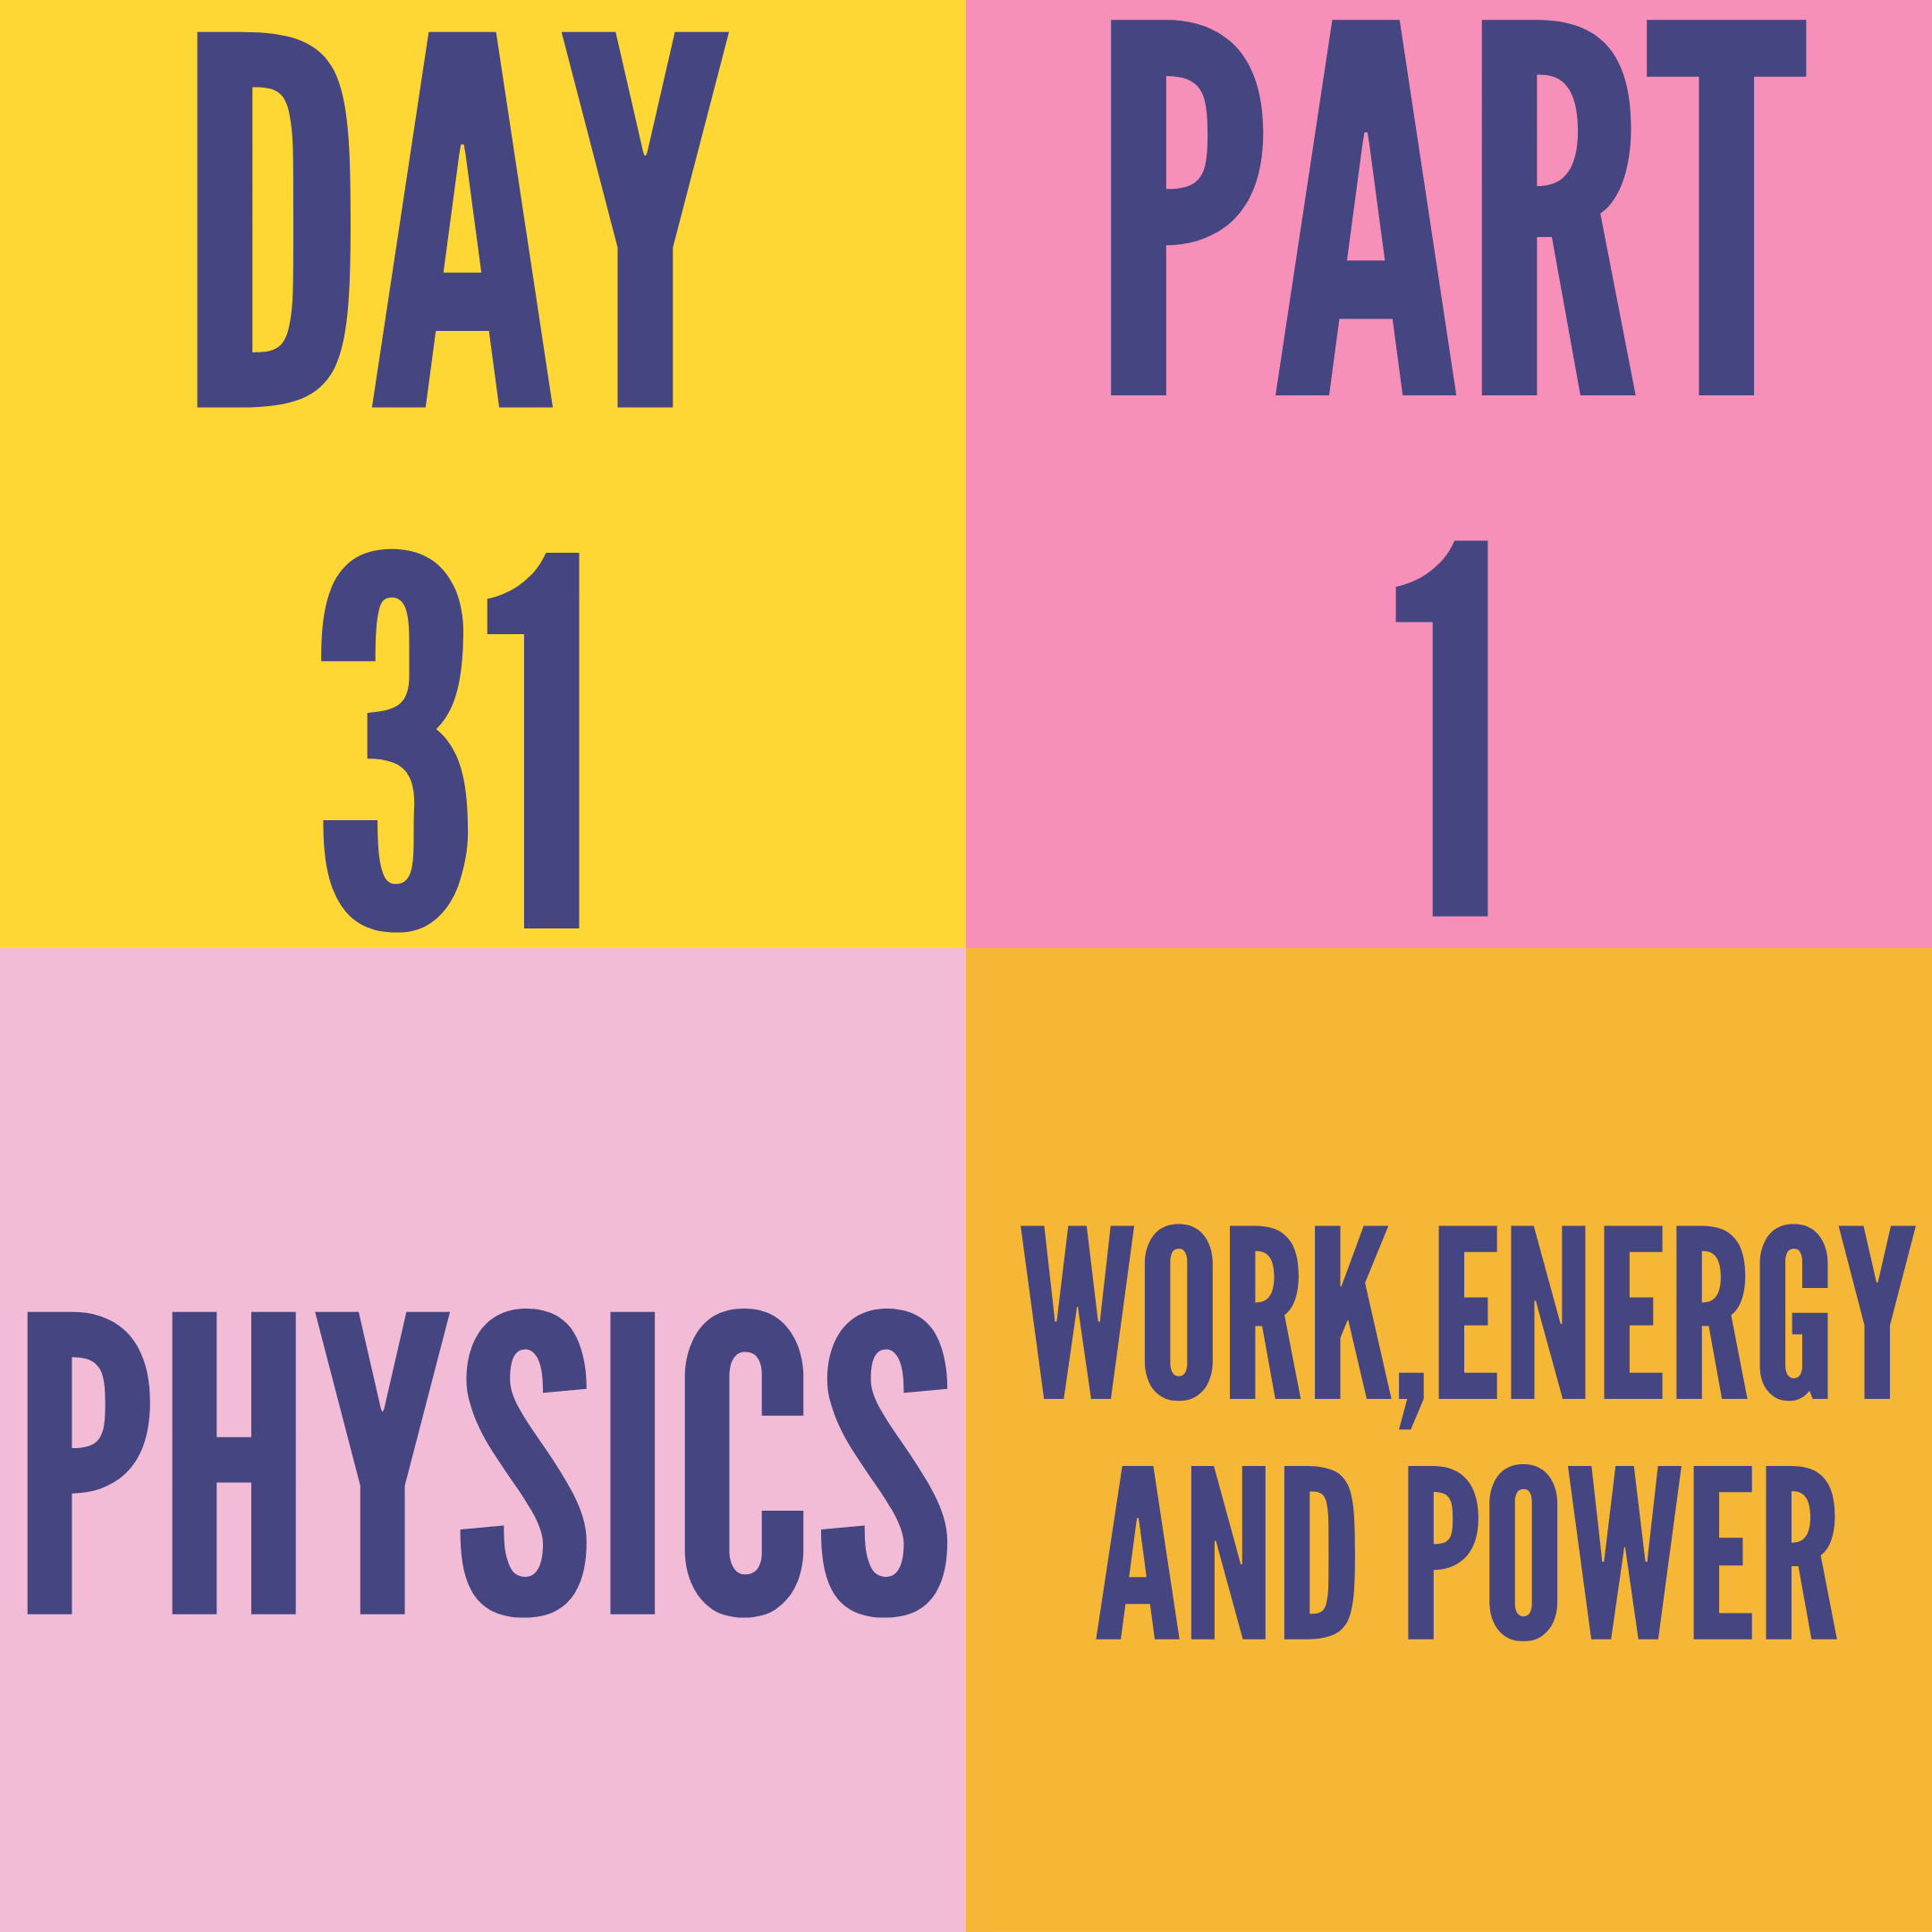 DAY-31 PART-1 WORK,ENERGY AND POWER